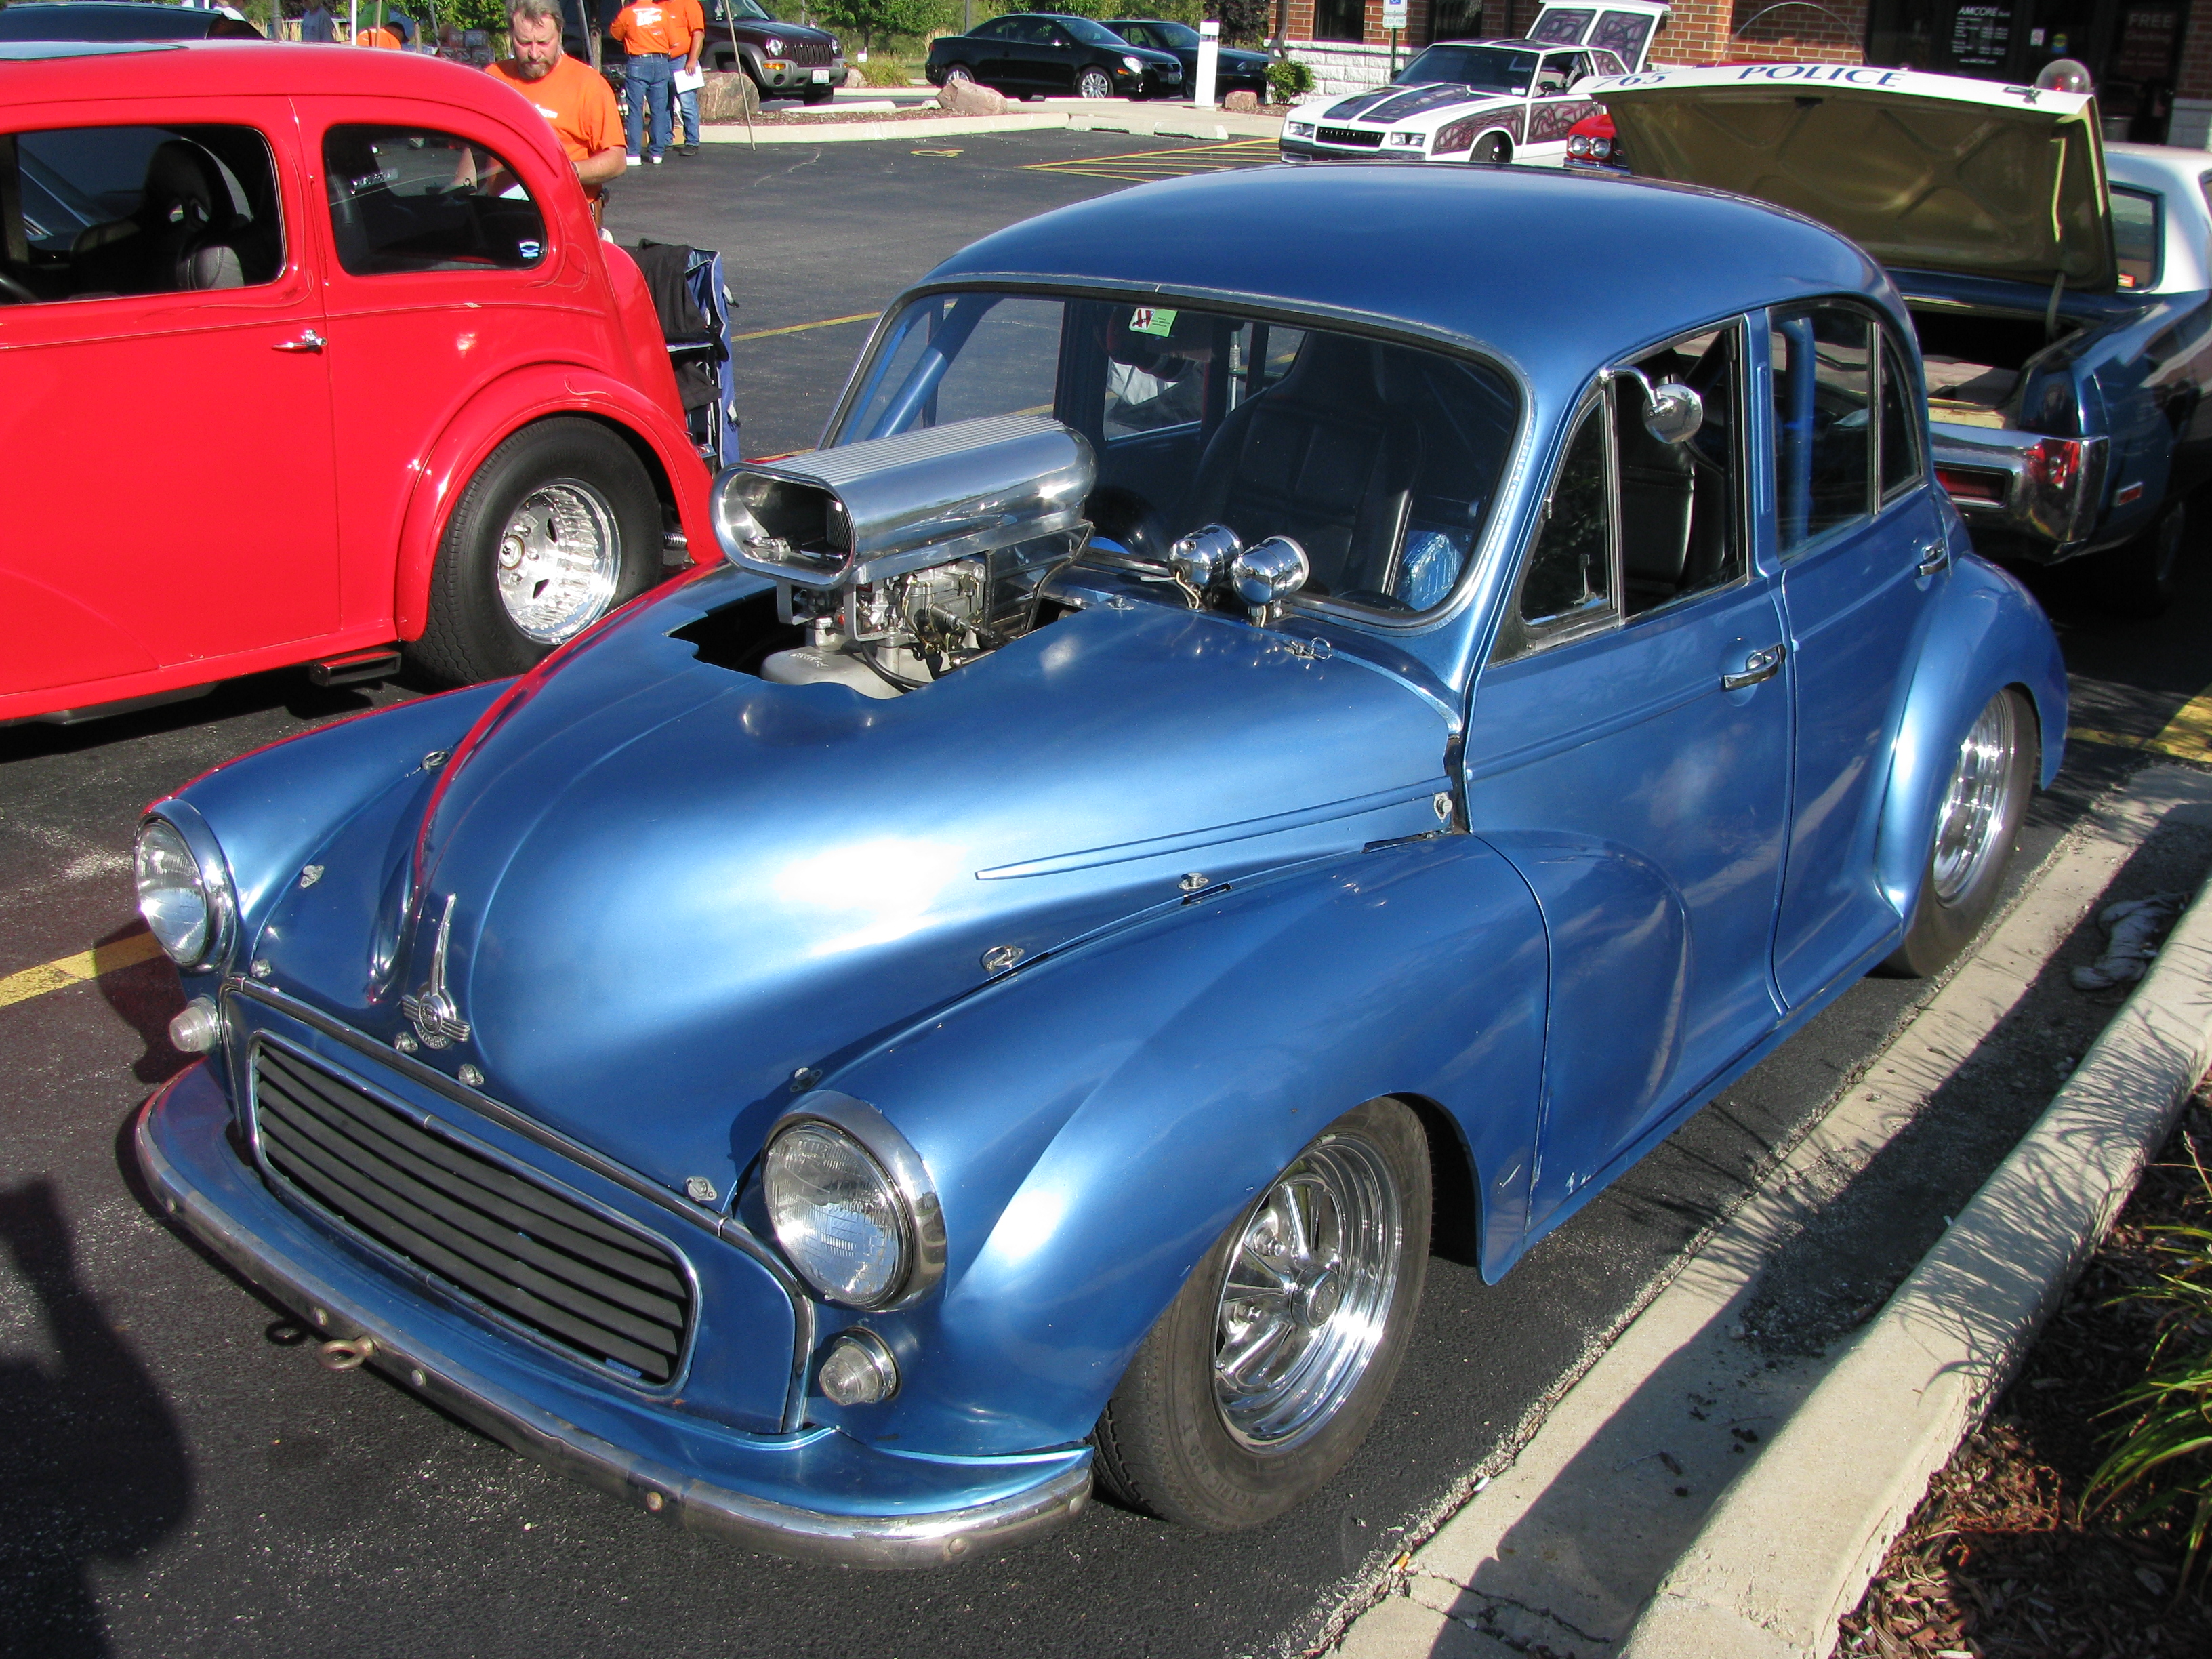 Hot Rod 1959 Morris Minor 1000